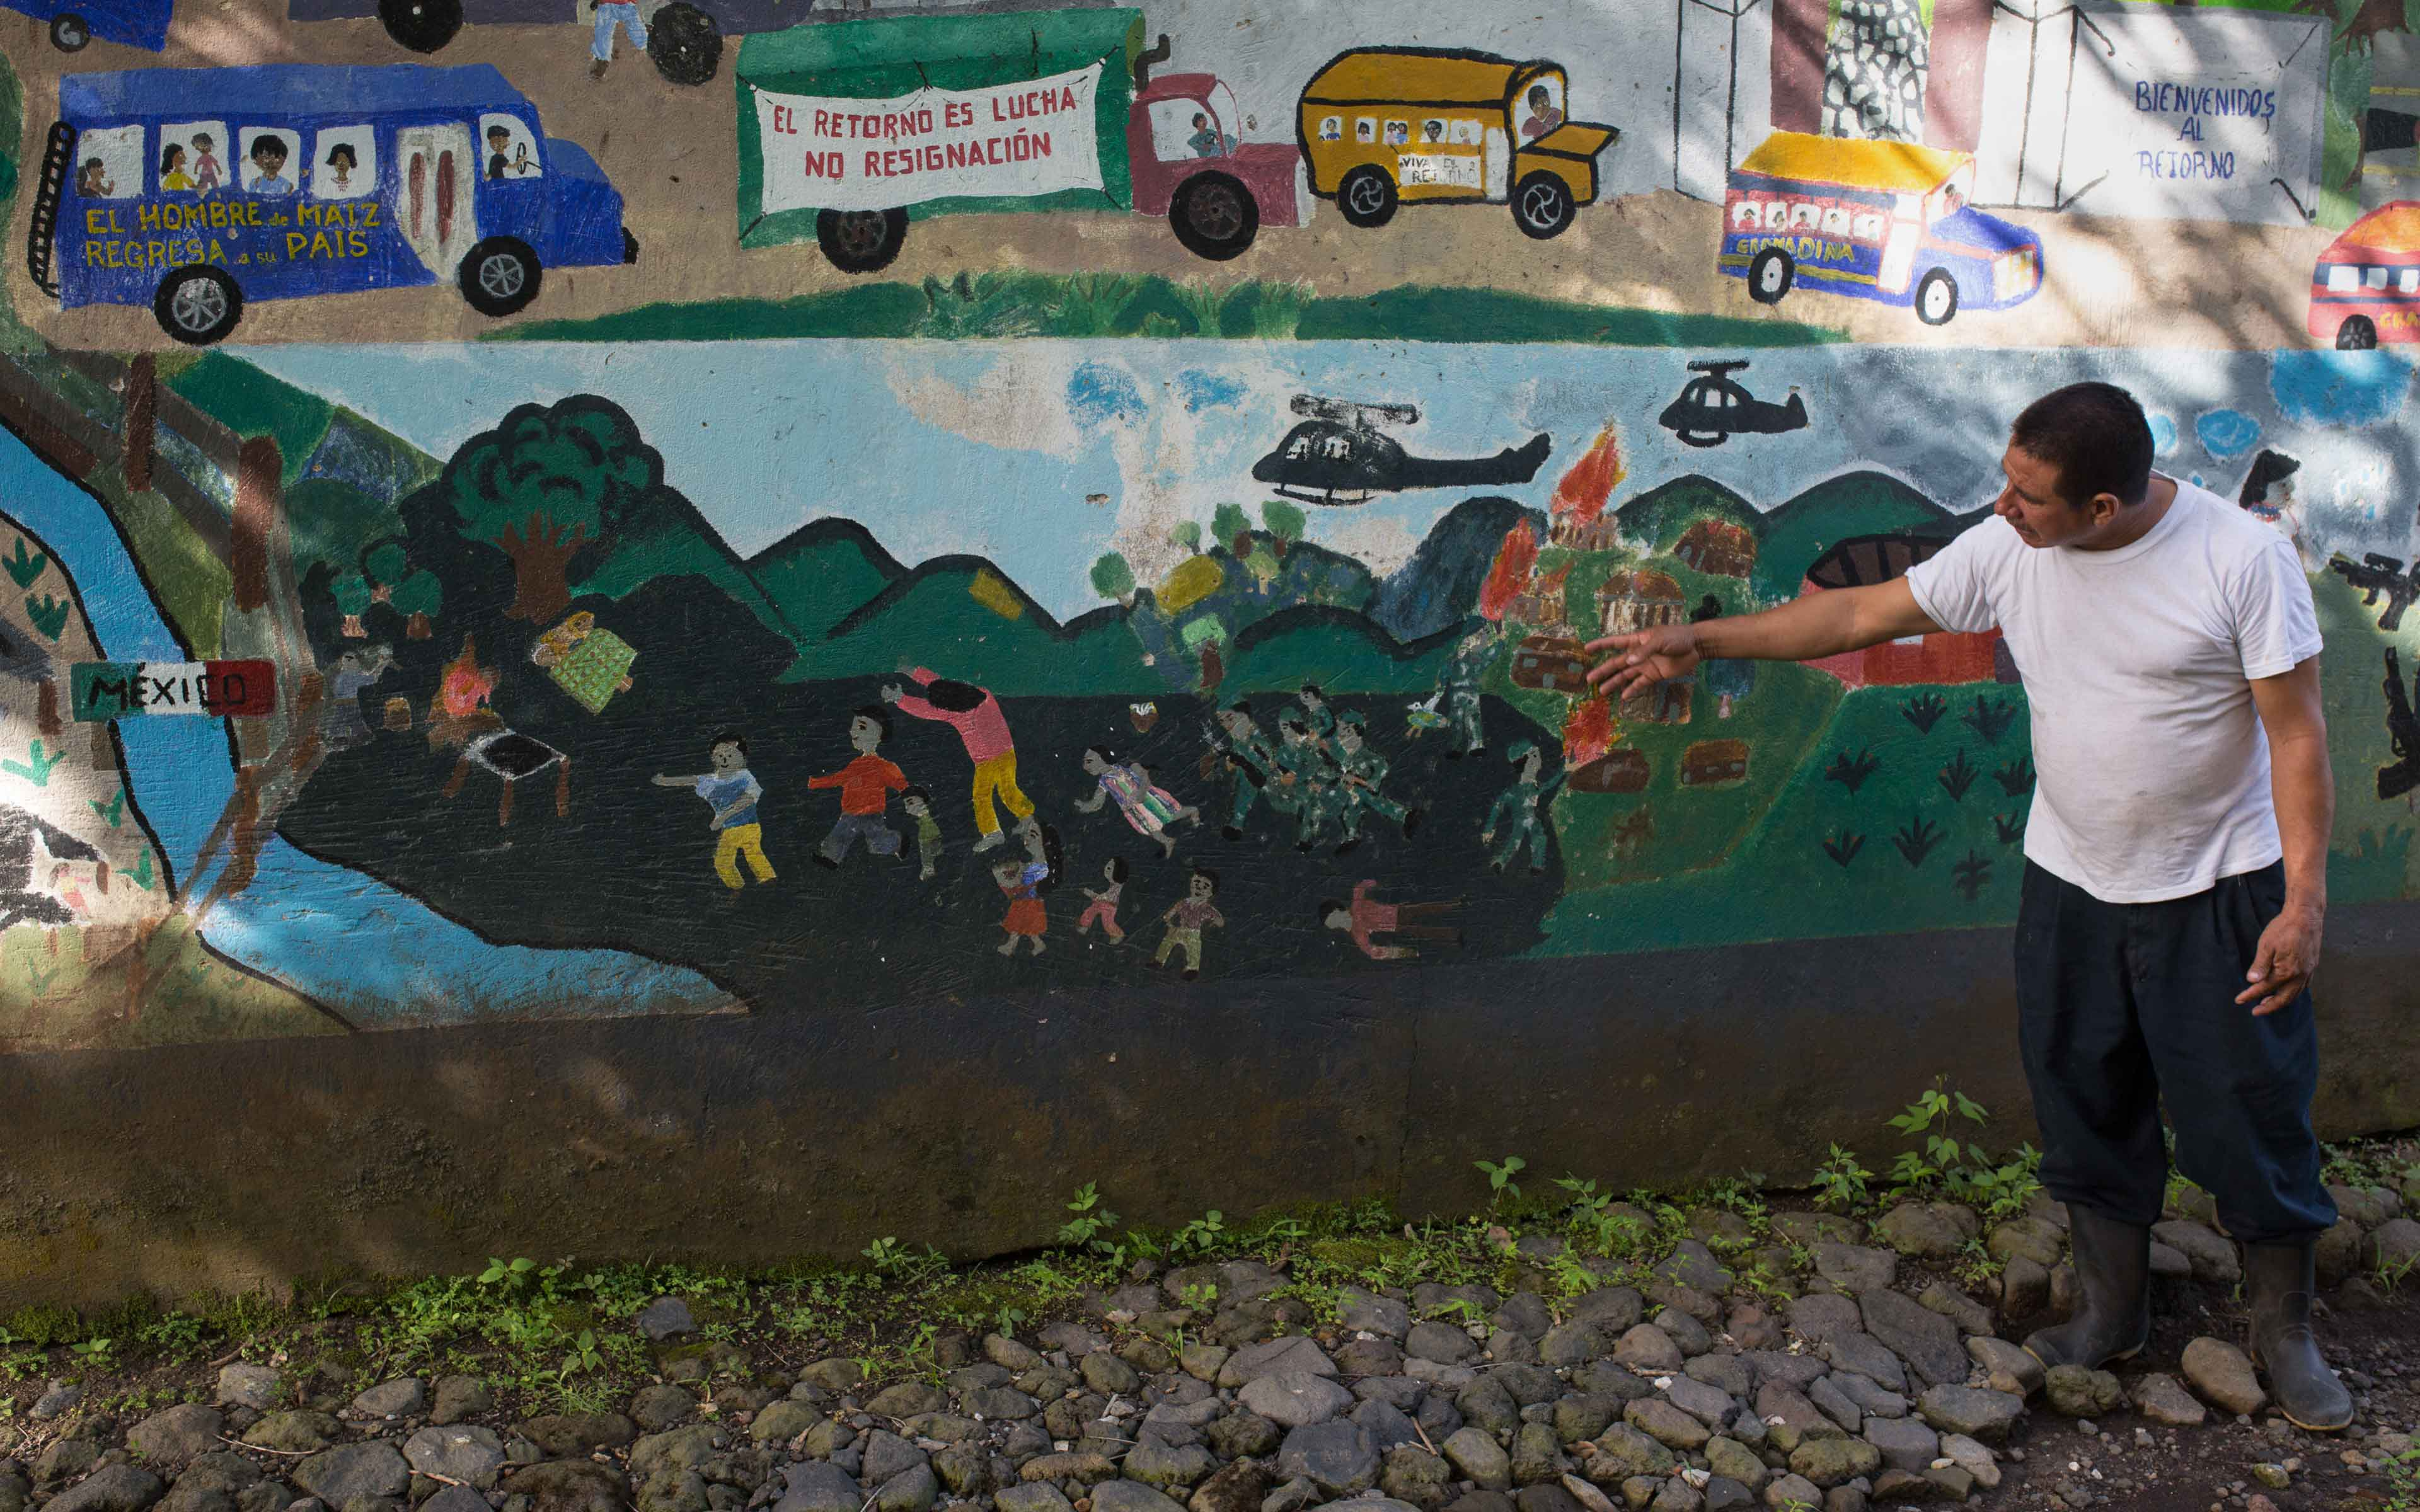 Gilberto Camposeco walks explains the history of his community, now known as La Trinidad, and how they had to flee the army to Mexico during the war in 1982